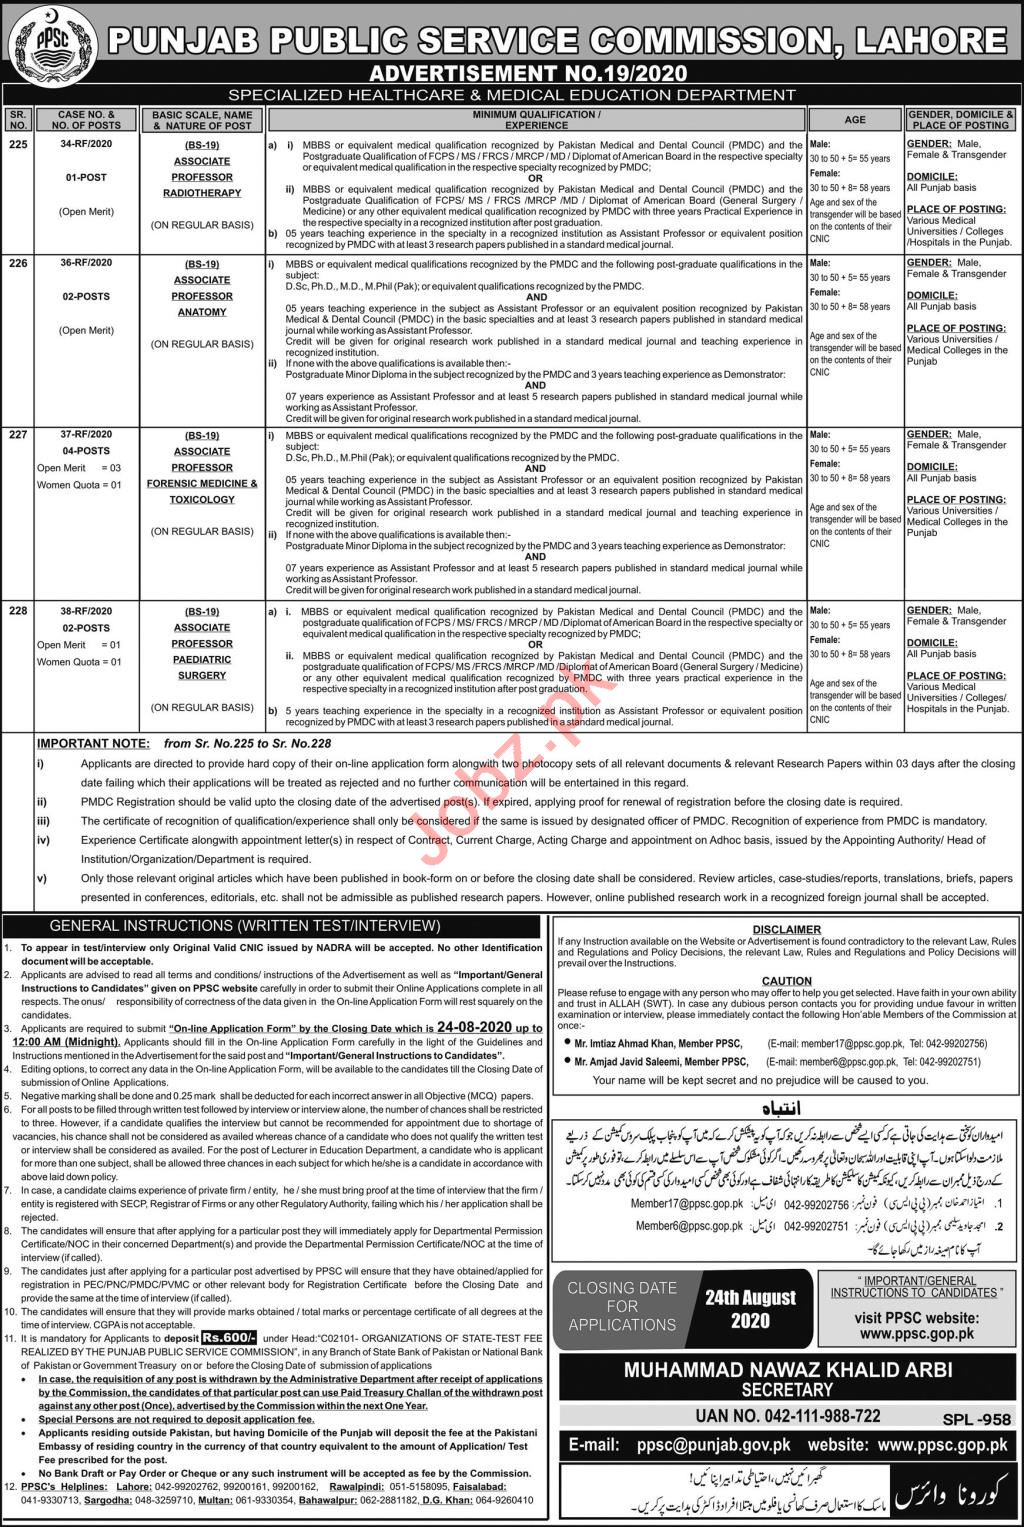 Specialized Healthcare & Medical Education PPSC Jobs 2020